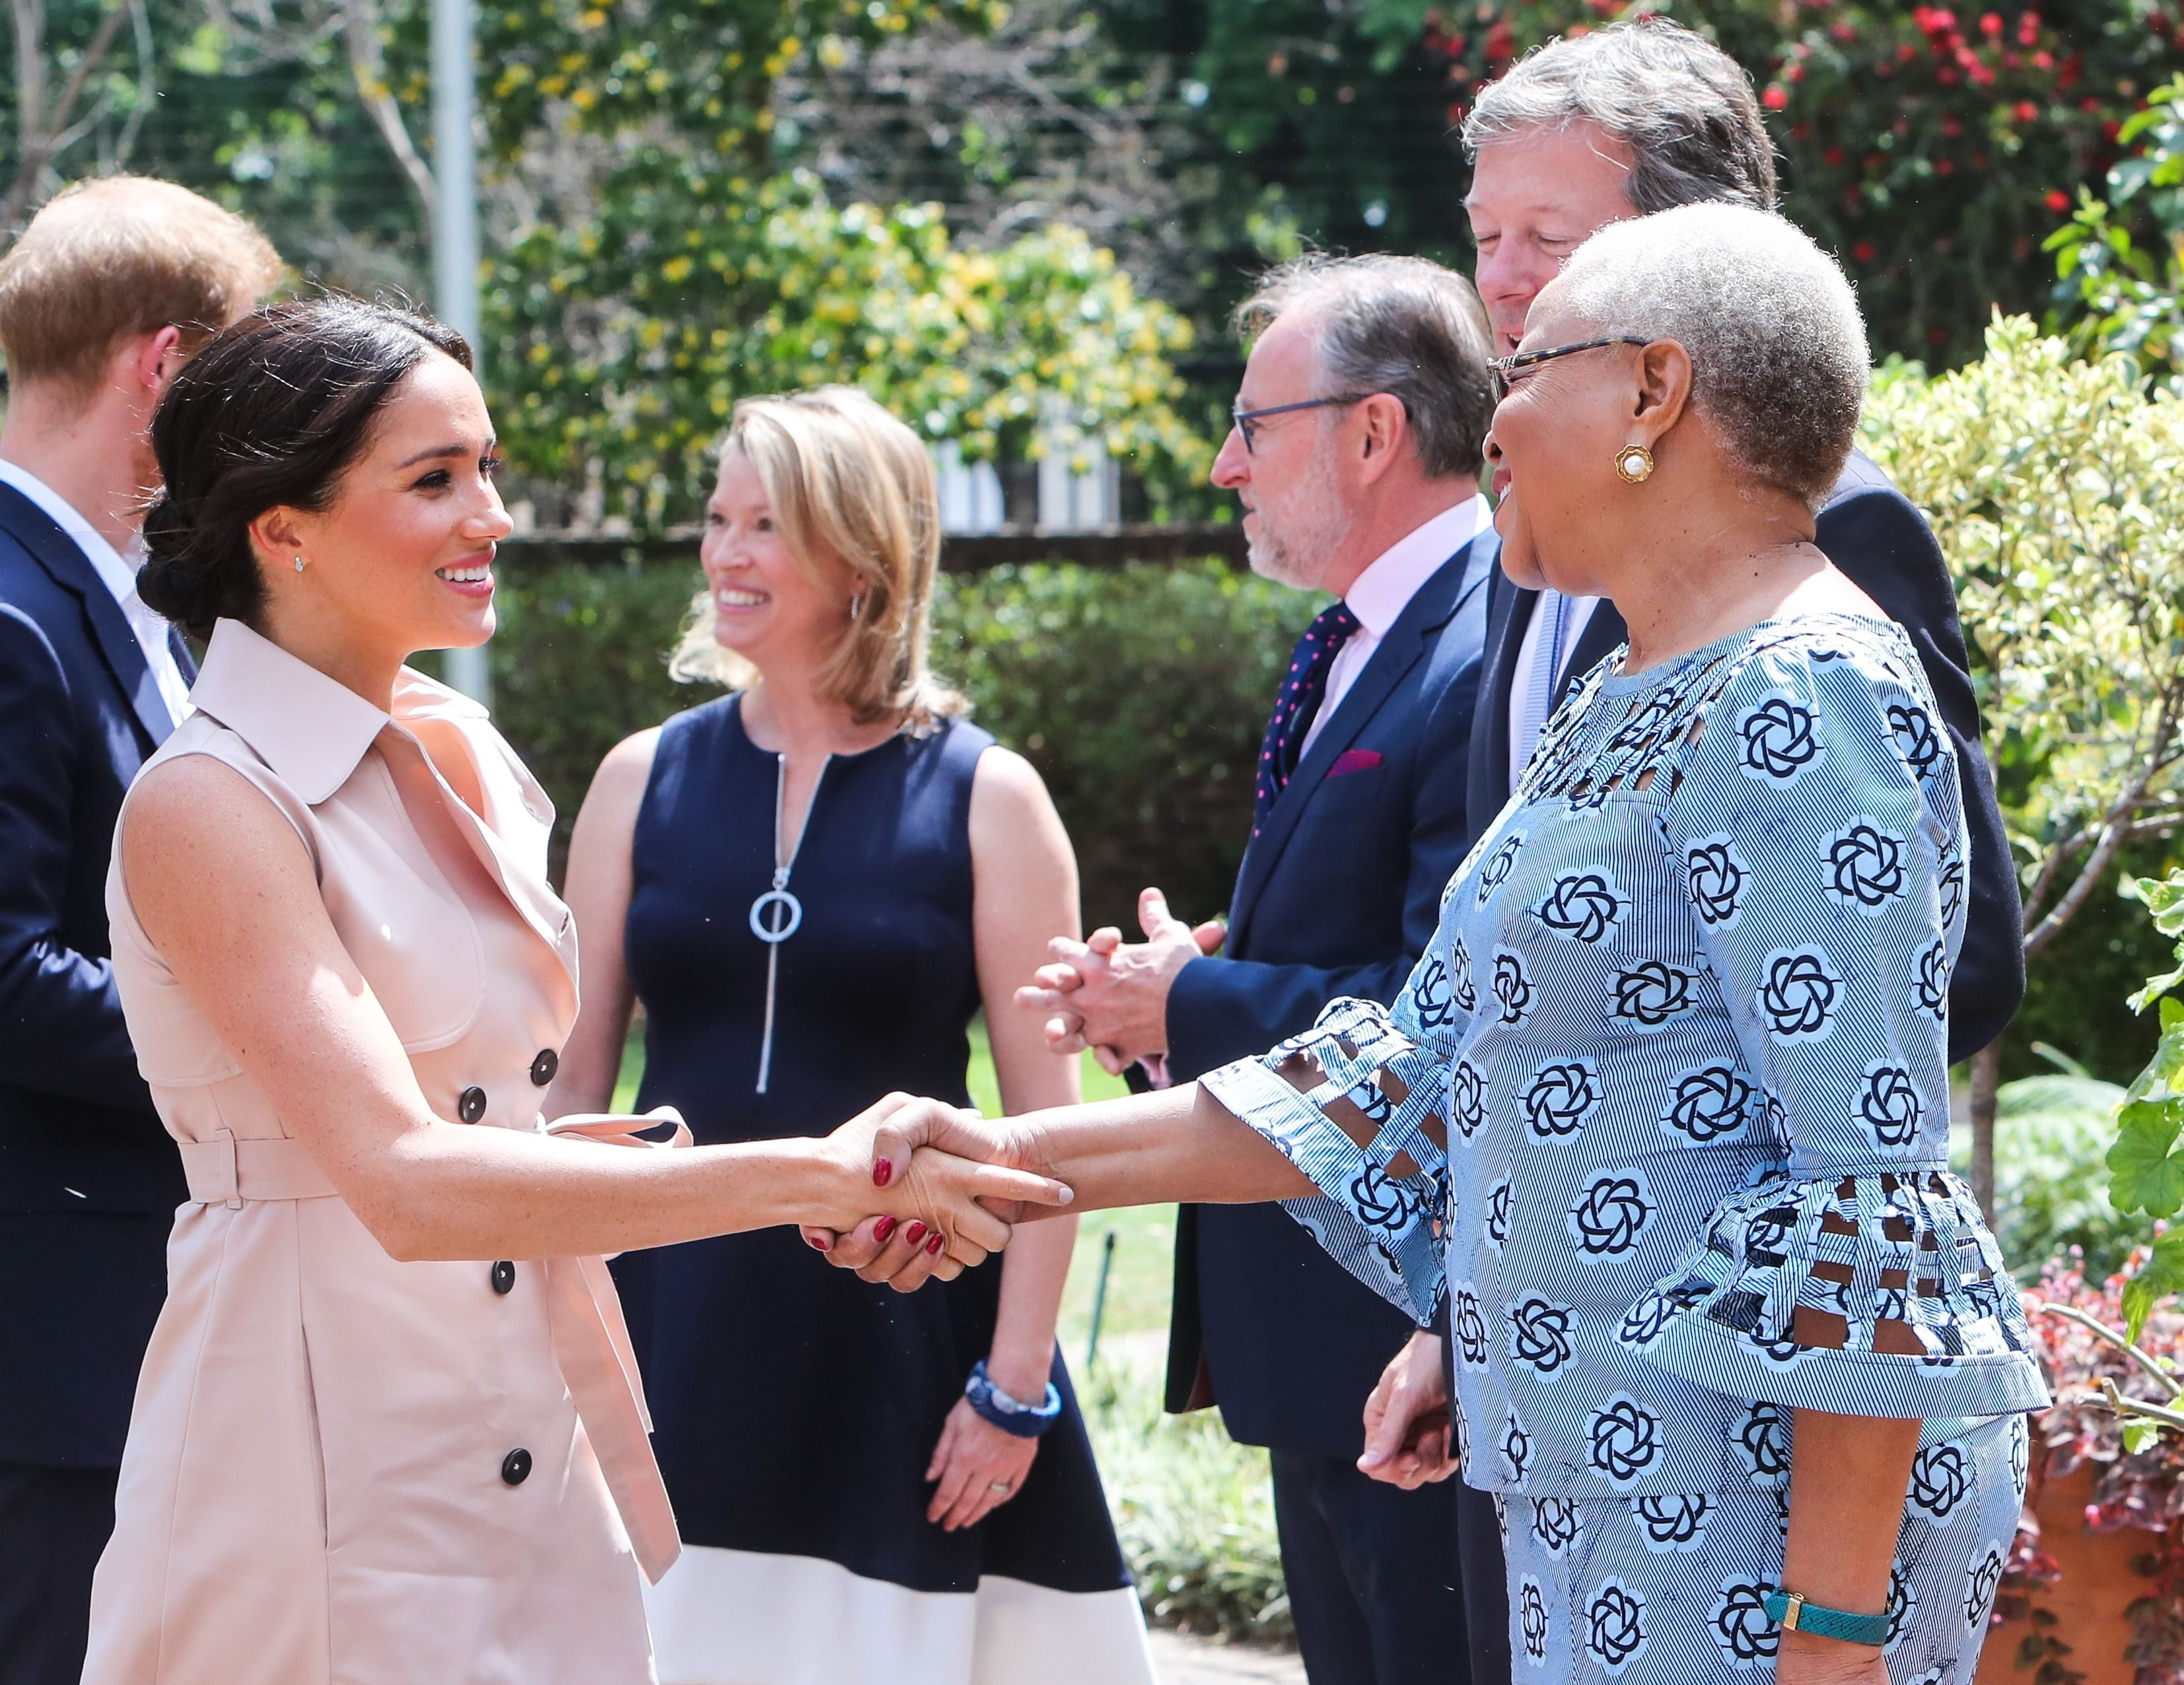 Mandatory Credit: Photo by Shutterstock (10434241q)<br /> Meghan Duchess of Sussex and Prince Harry meet with Graca Machel, widow of Nelson Mandela at the High Commissioner's residence in Johannesburg, South Africa.<br /> Prince Harry and Meghan Duchess of Sussex visit to Africa - 02 Oct 2019<br /> The Duke and Duchess of Sussex meet with Graca Machel, widow of Nelson Mandela at the High Commissioner's residence in Johannesburg, South Africa.